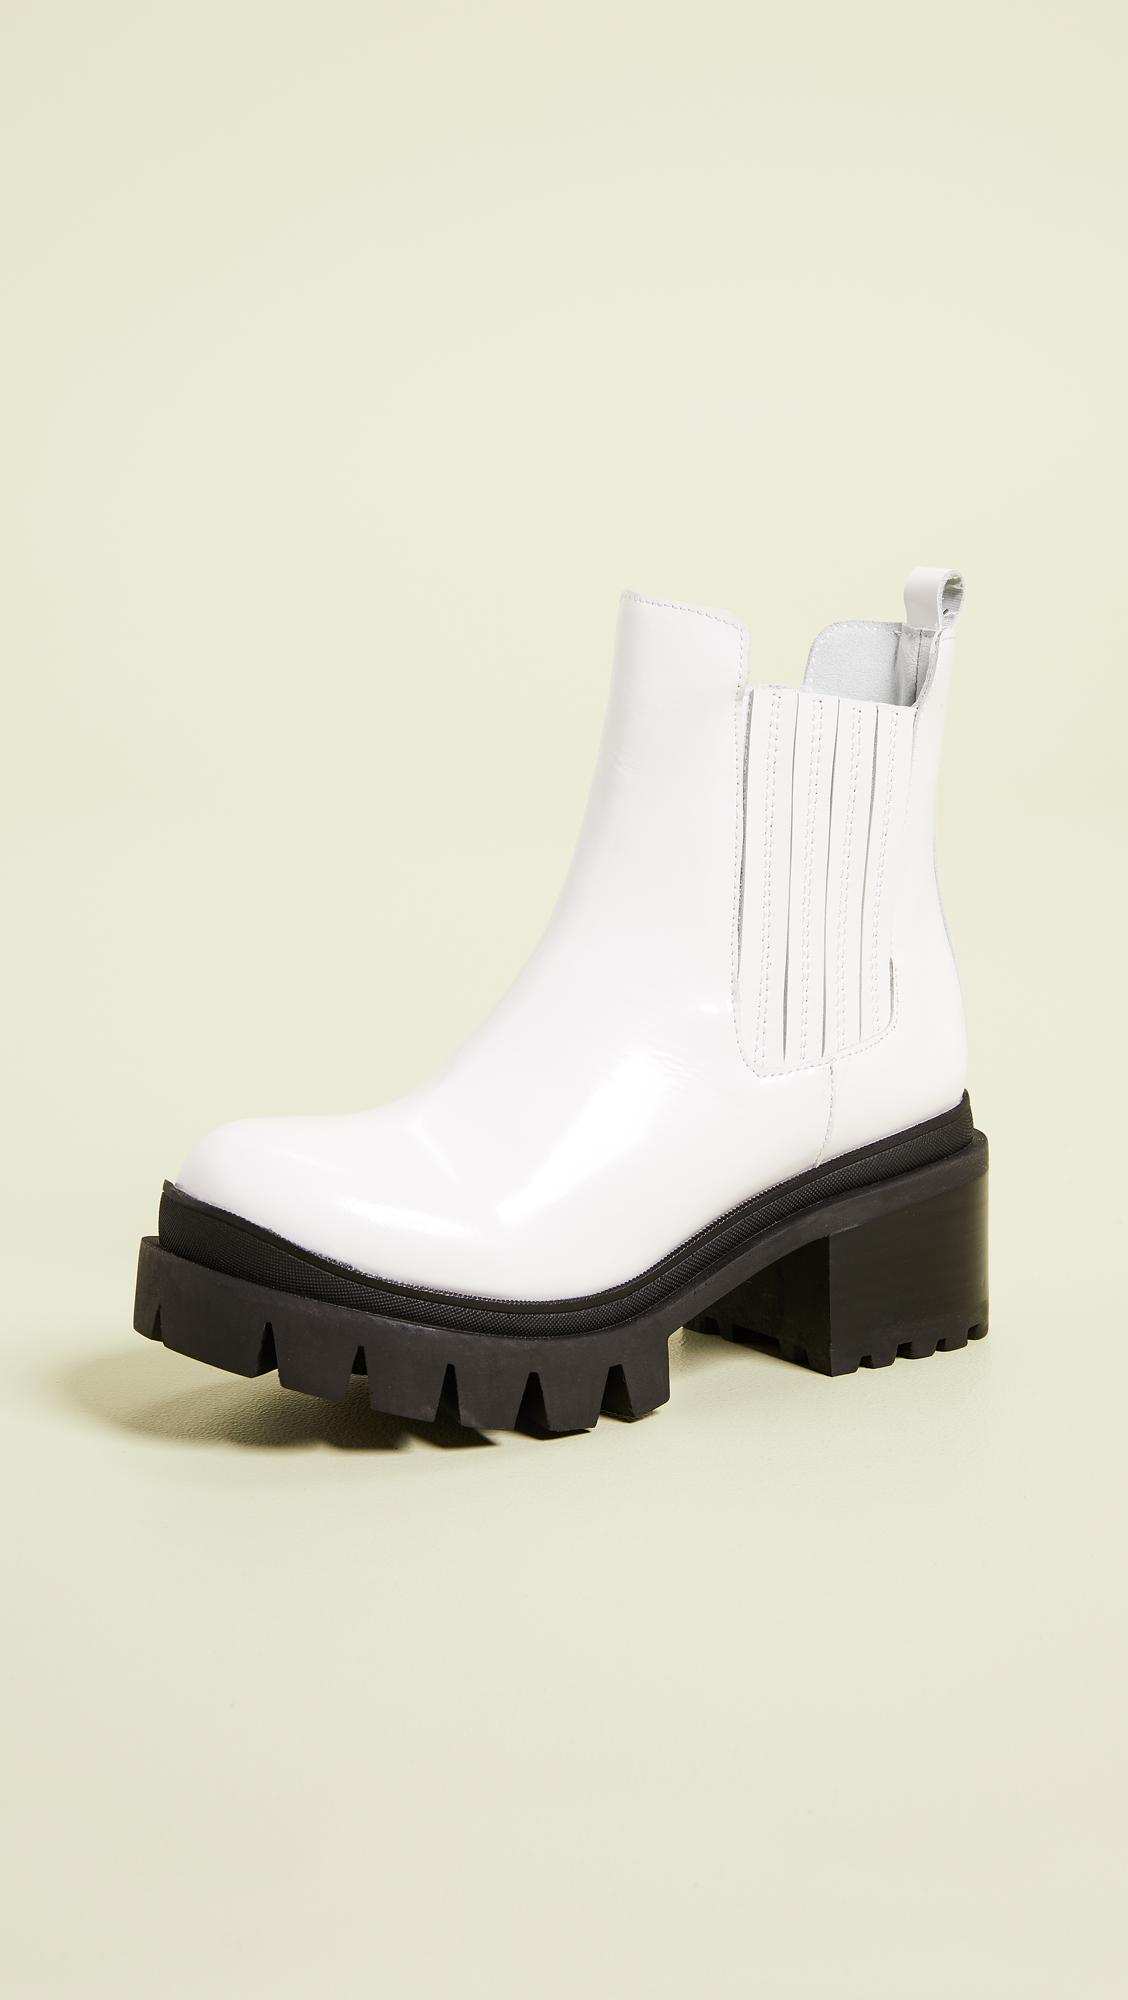 be452787560 Lyst - Jeffrey Campbell Fright Lug Sole Chelsea Boots in White